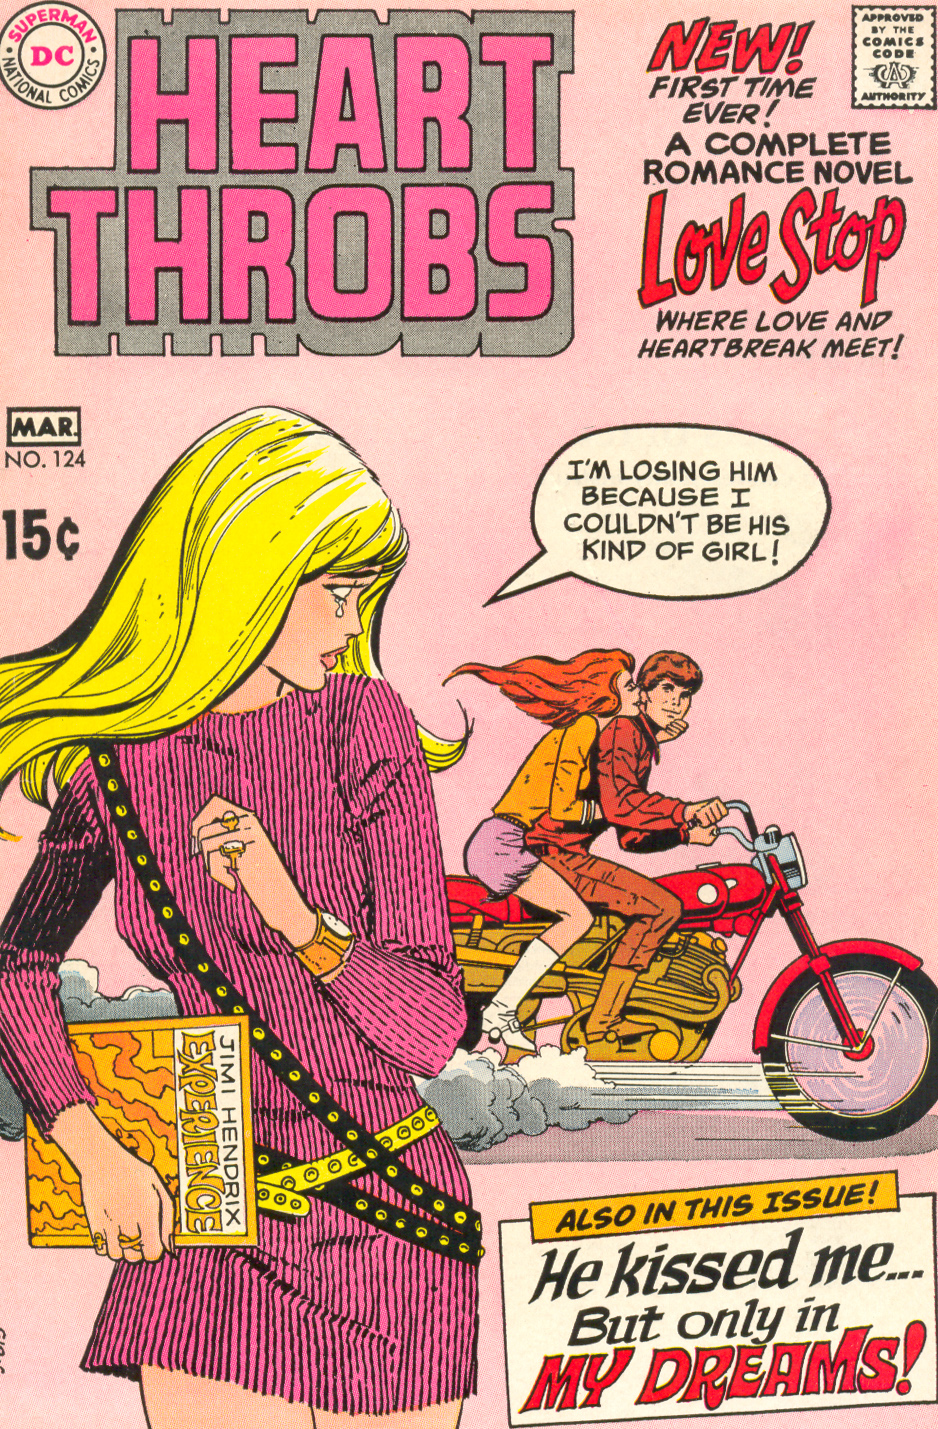 Heart Throbs #124 (February/March 1970)